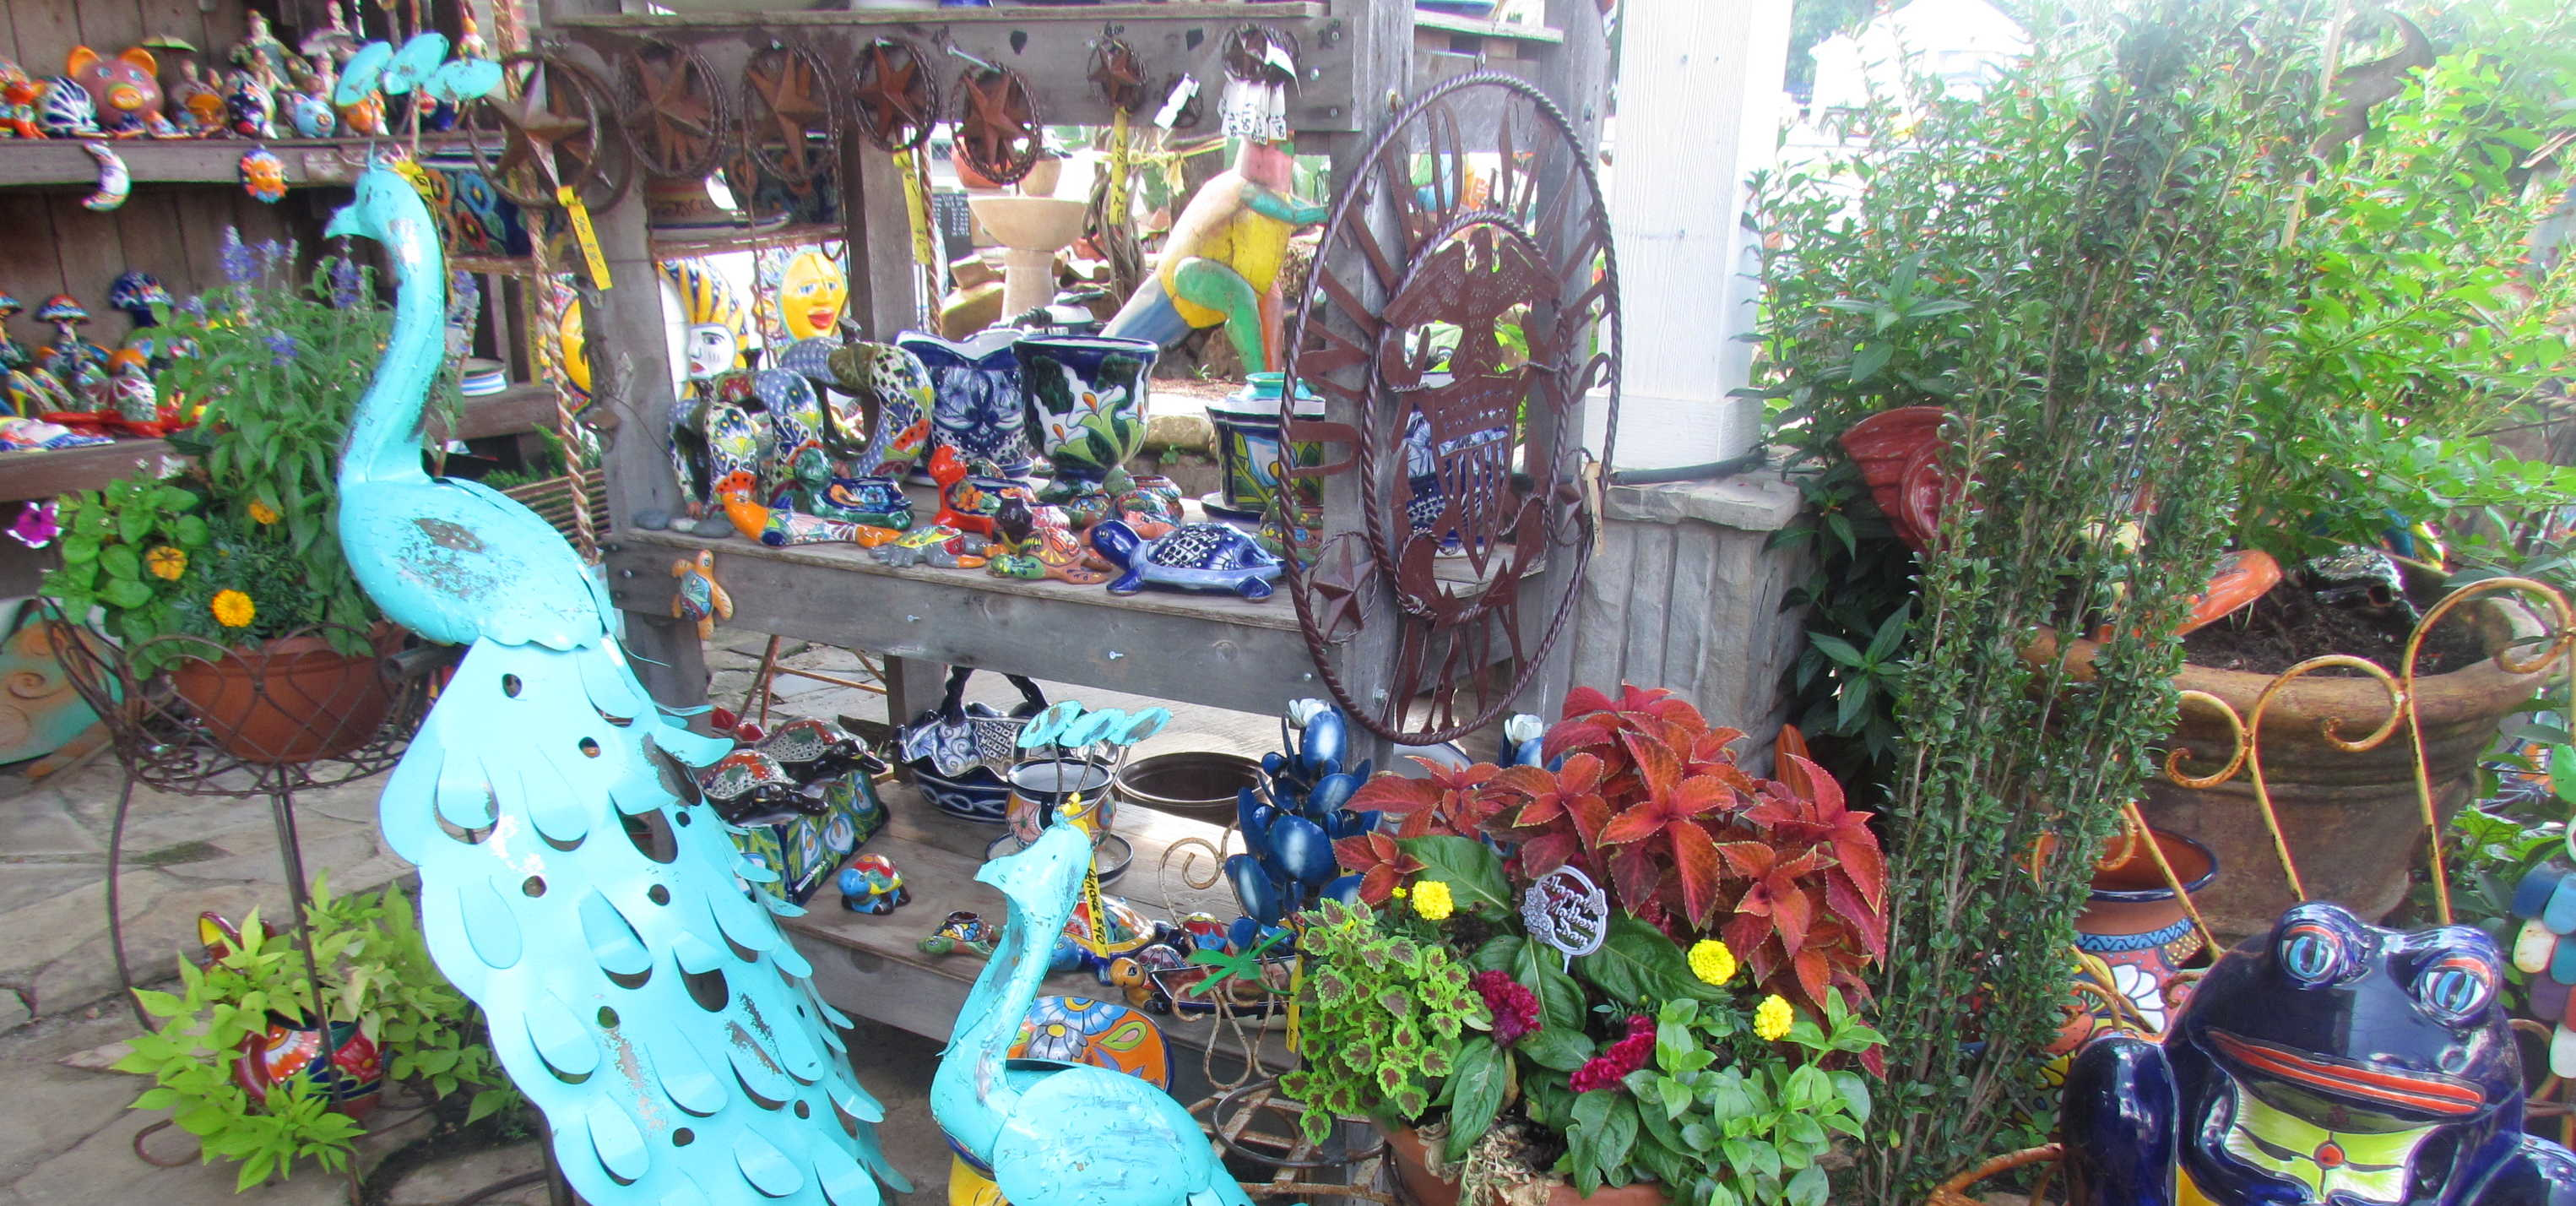 Yard decorations, Cement Statues, Talavera Pottery, Iron Decorations and more at Madison Gardens Nursery, Spring, TX.